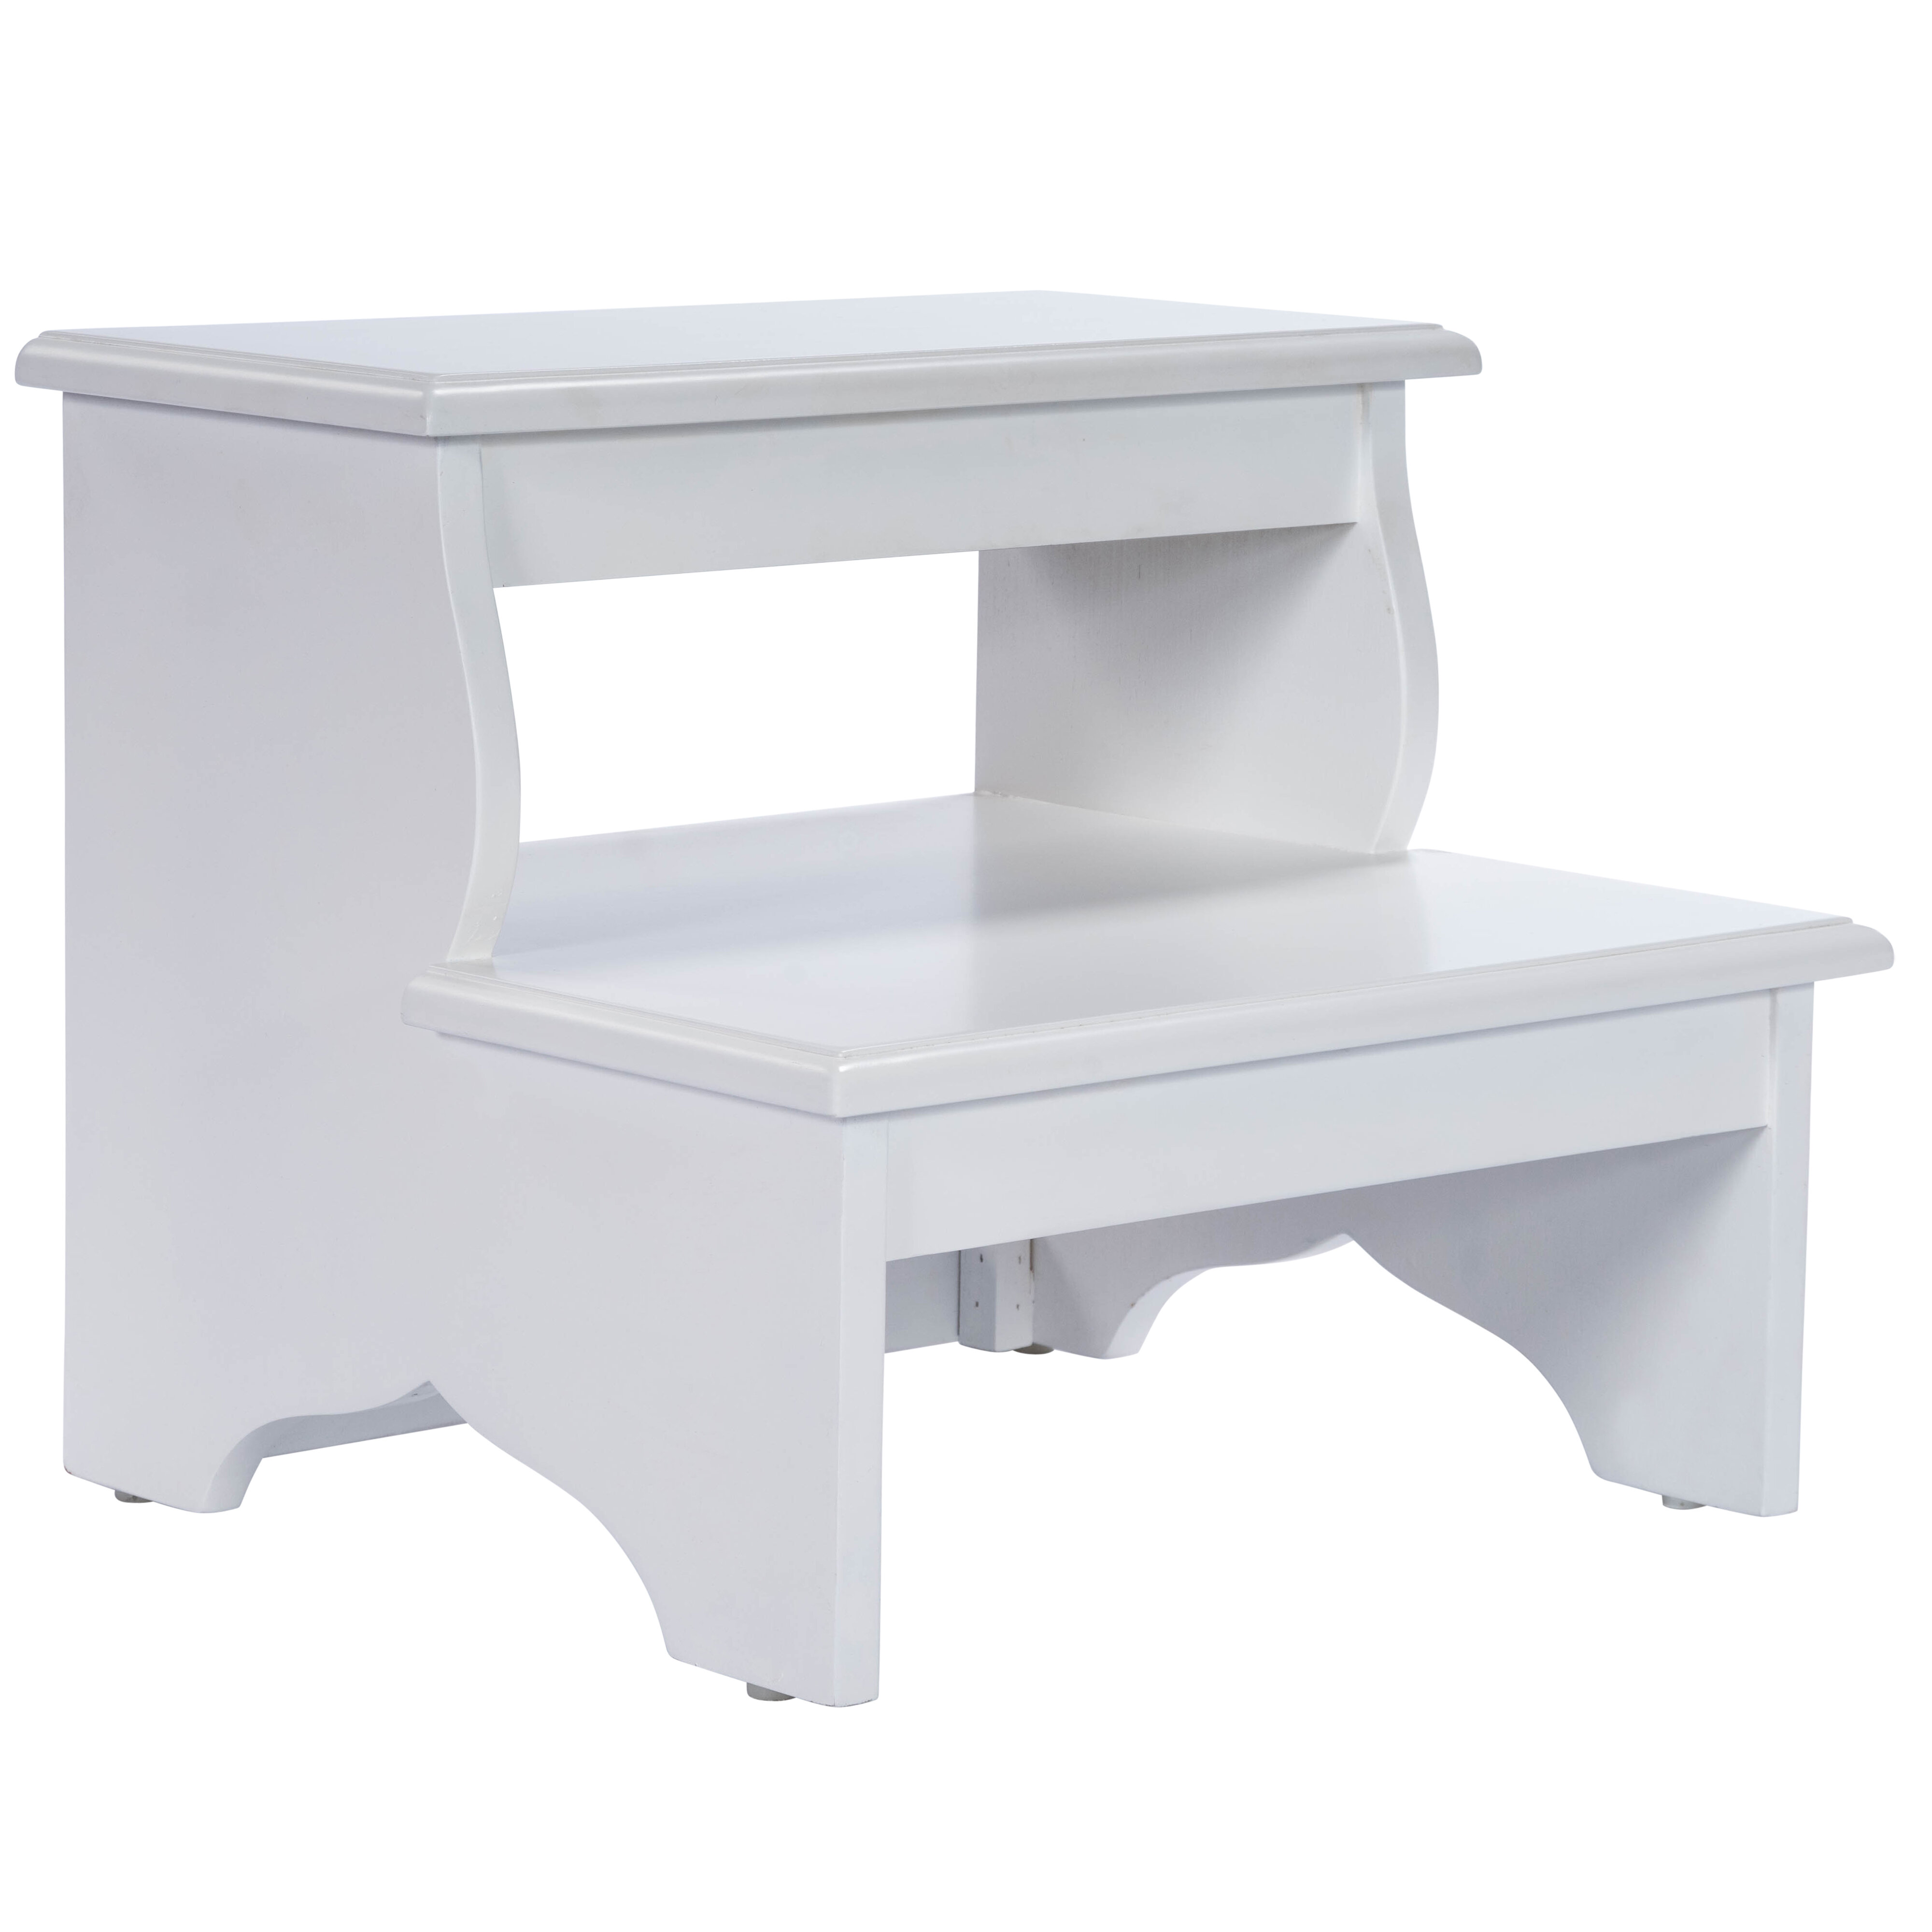 Magnificent Copley 2 Step Wood Step Stool With 375 Lb Load Capacity Creativecarmelina Interior Chair Design Creativecarmelinacom